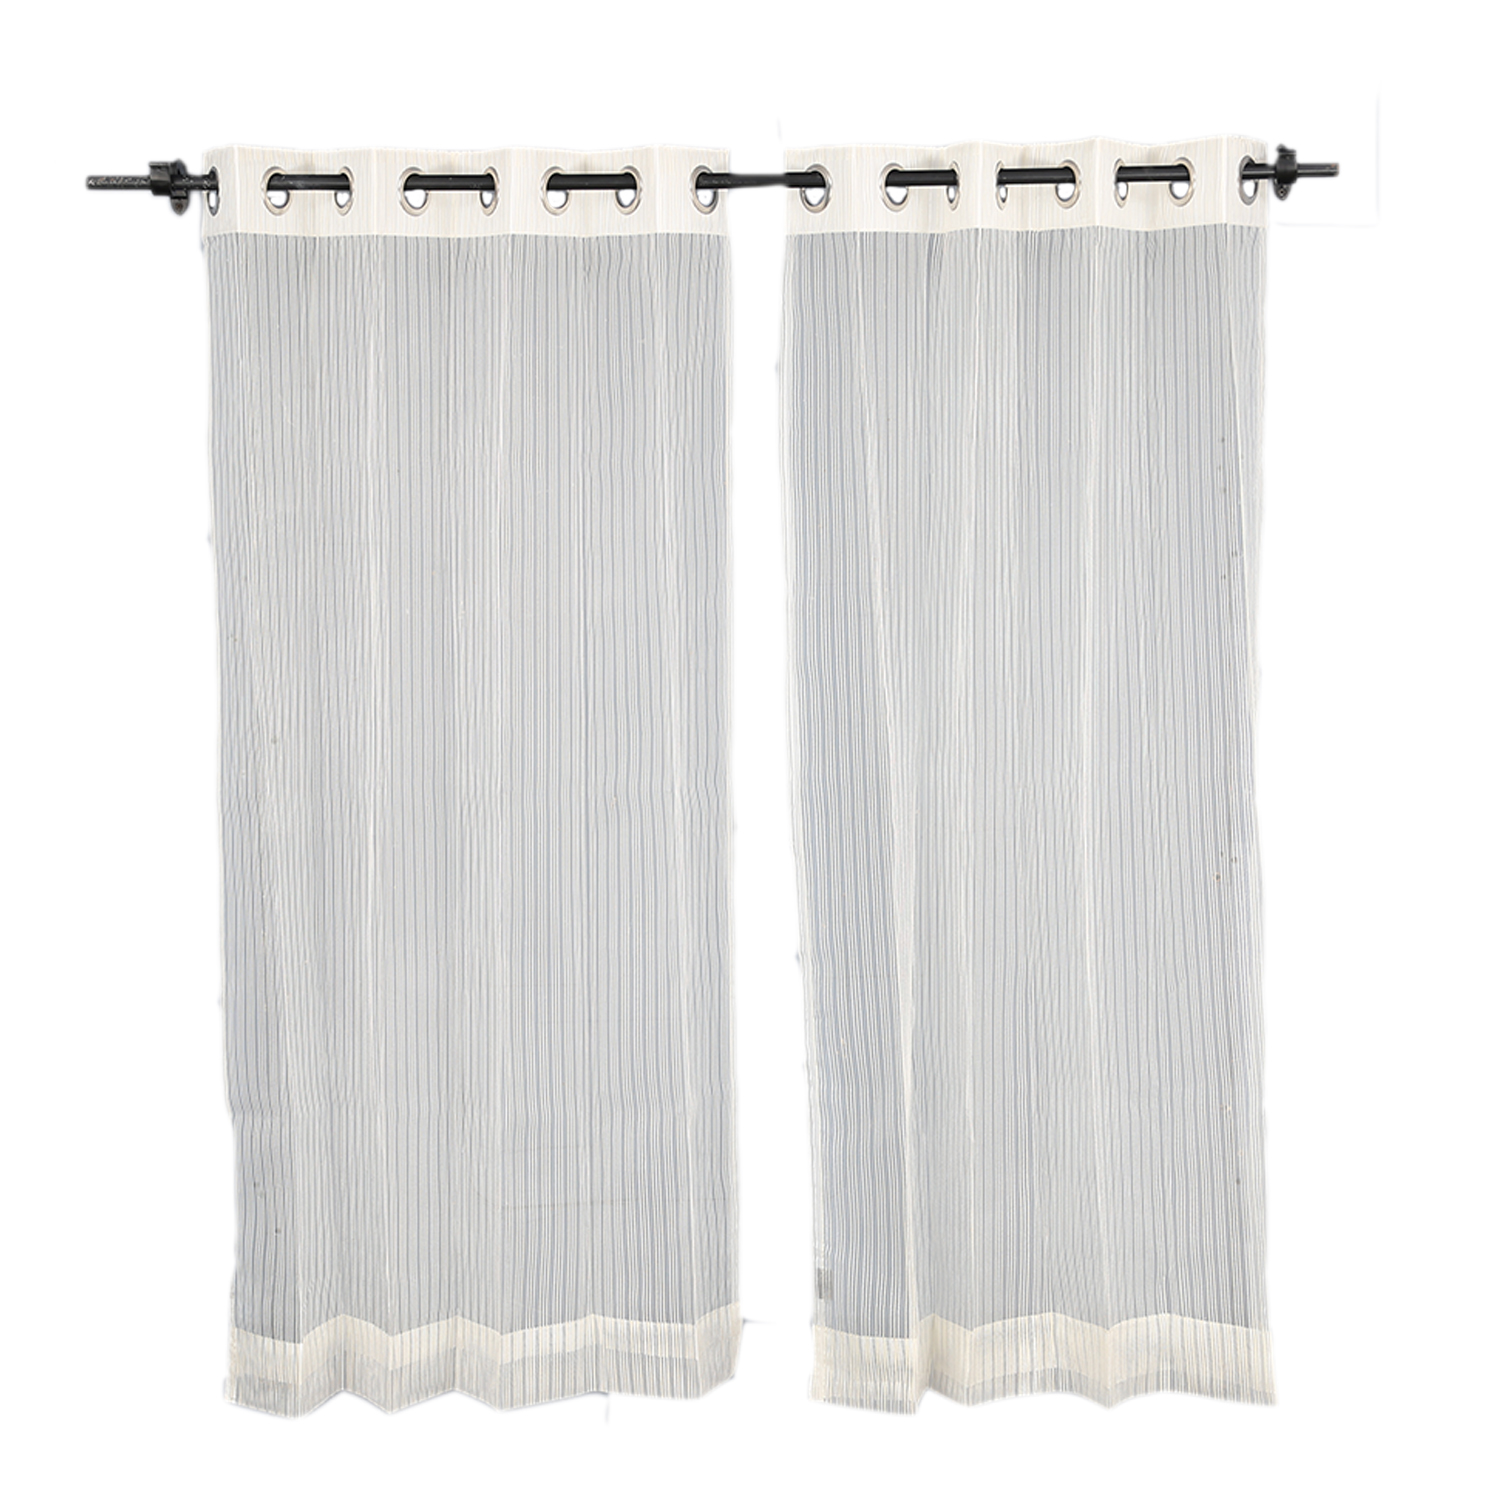 SIA Polyester Sheer Curtains in Off White Colour by Living Essence